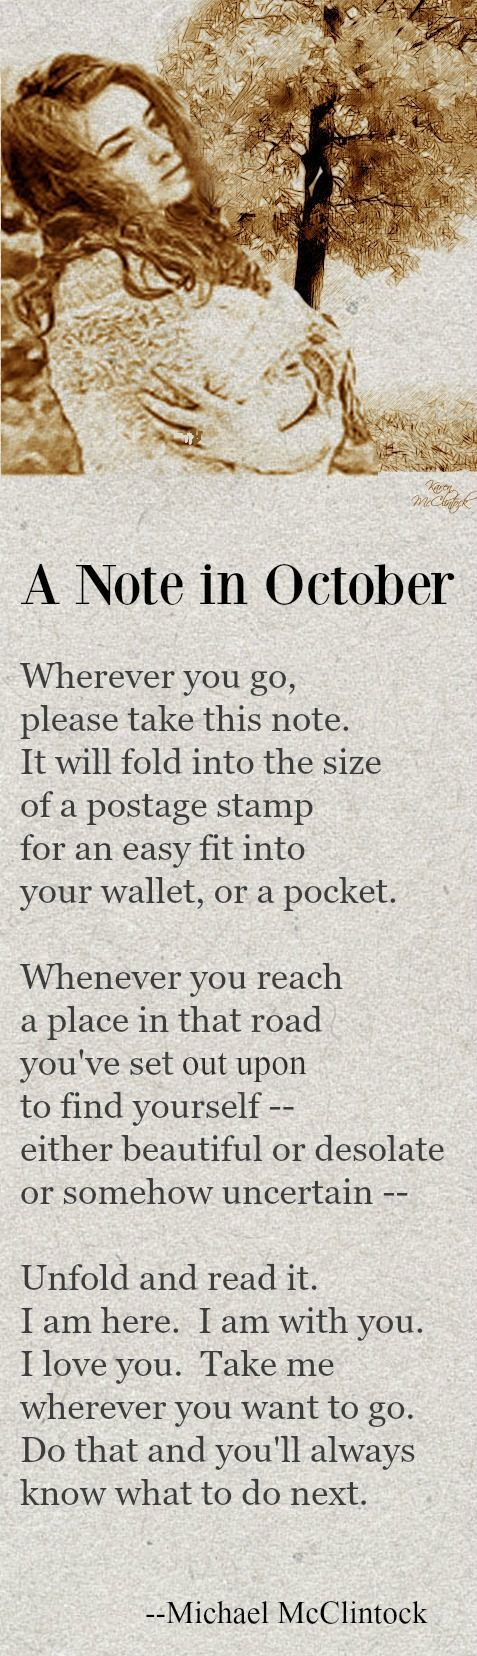 Poem: A Note In October    By Michael McClintock.